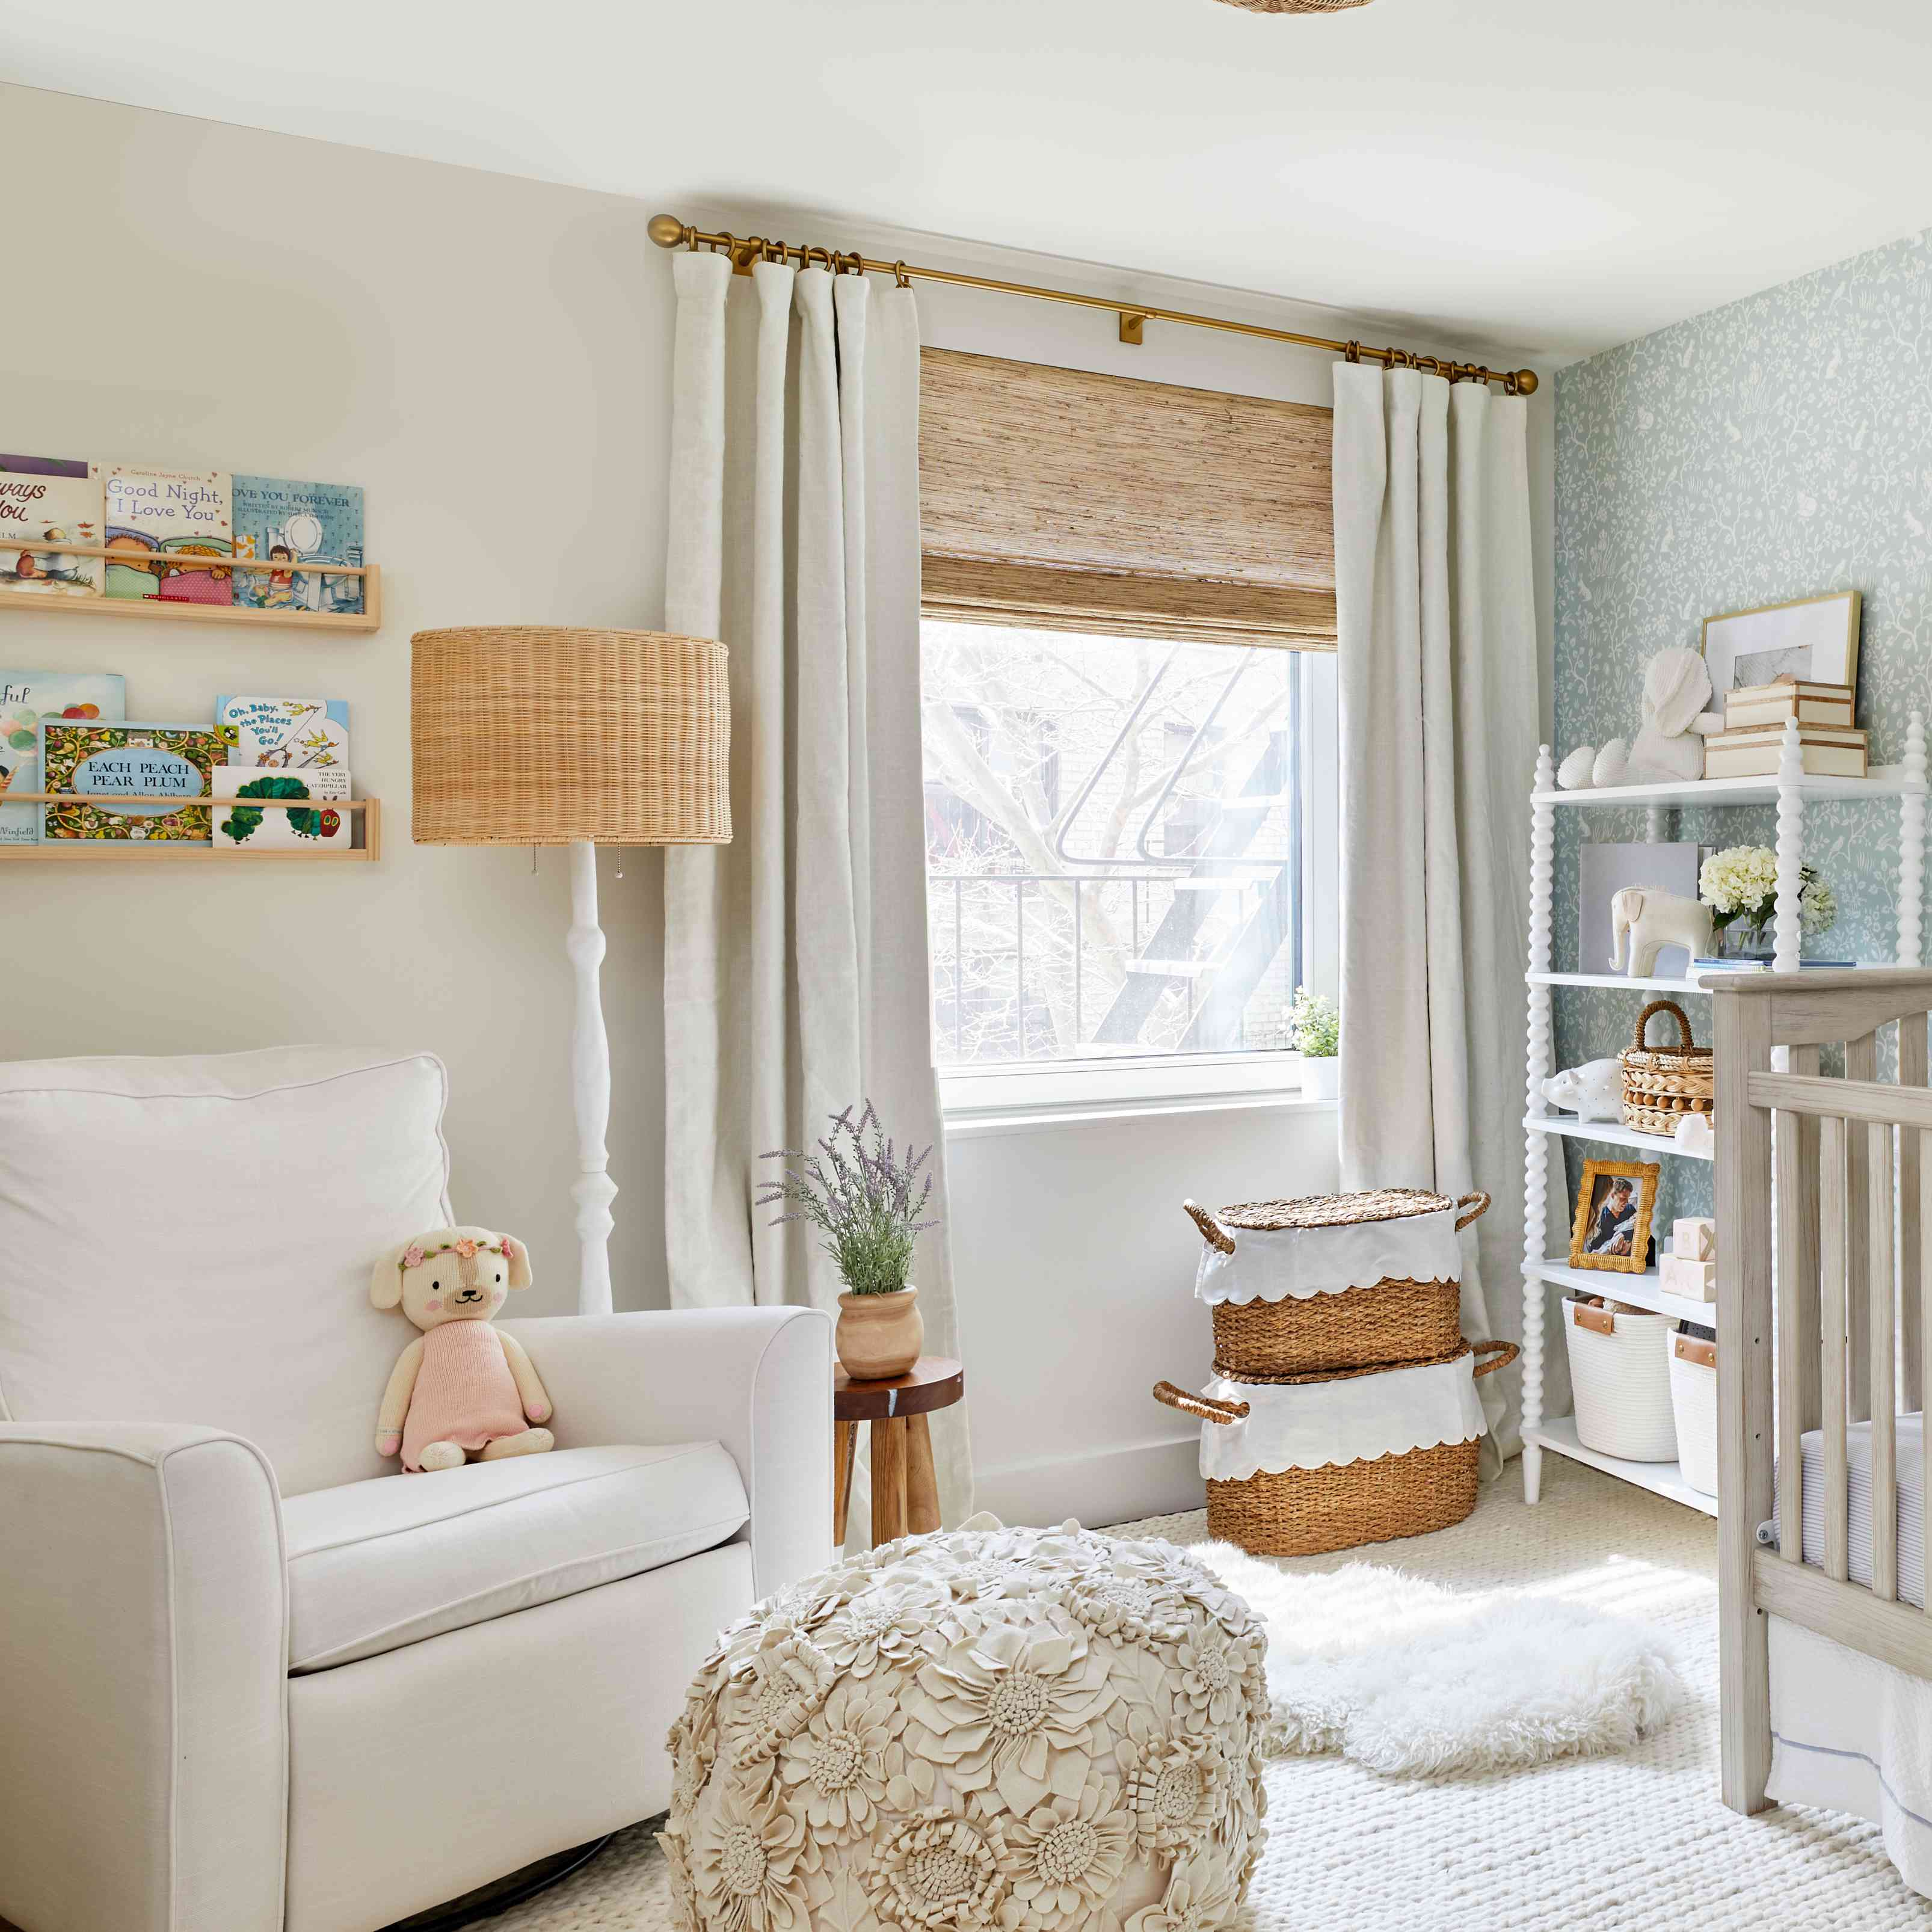 nursery with chair, cream white interior, with book ledges installed above chair